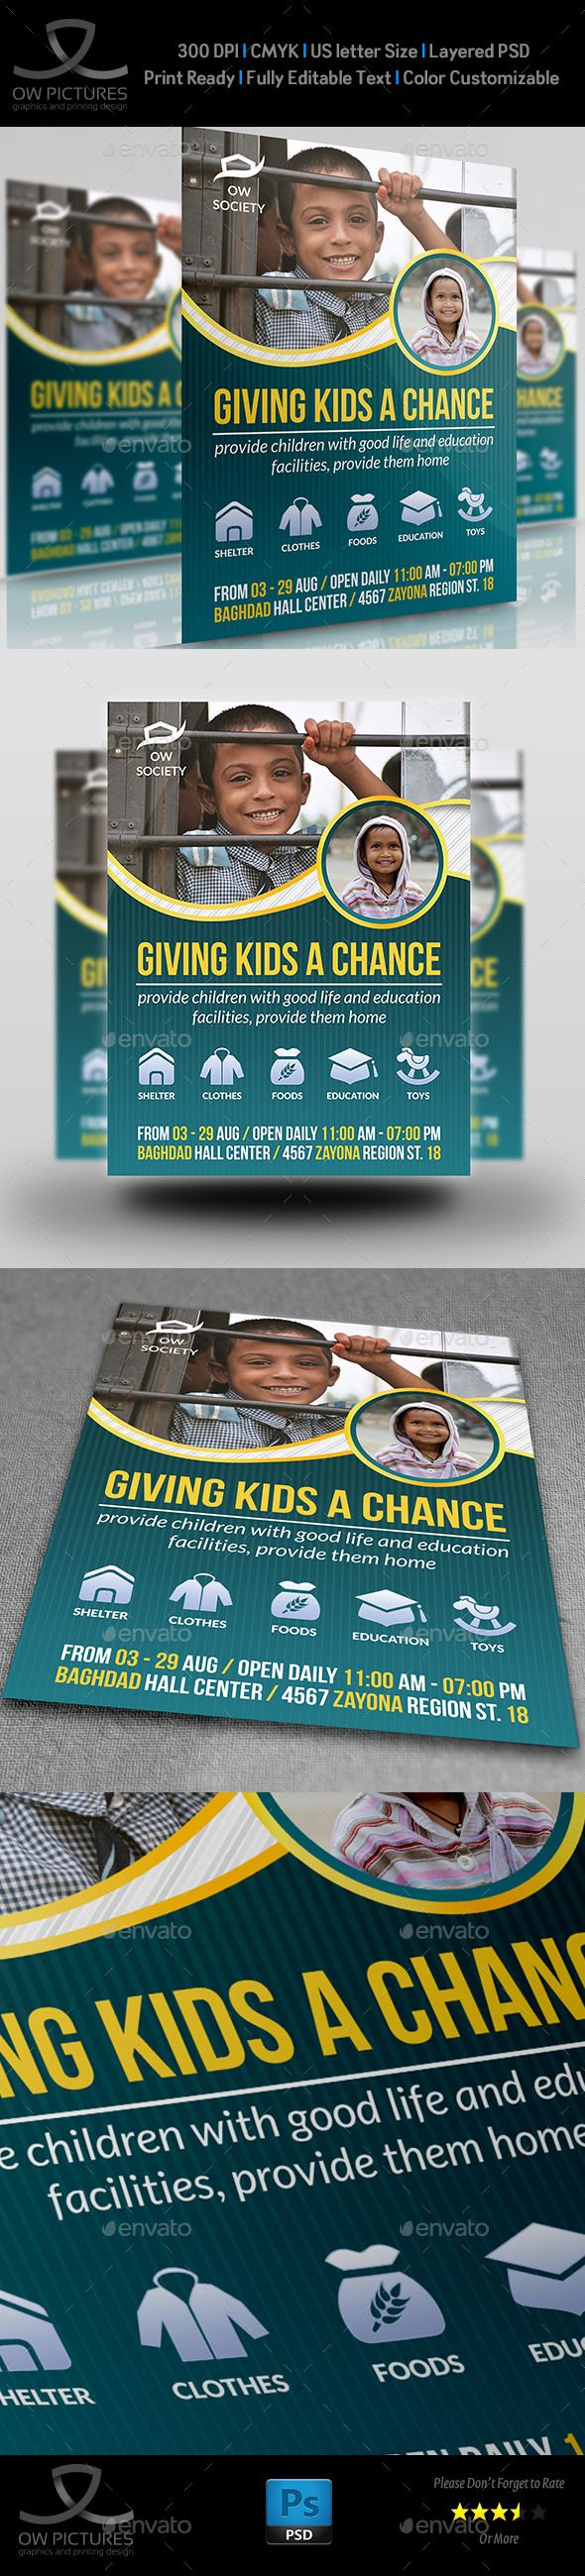 Kids Charity Flyer Template #flyertemplate Buy and  Download: http://graphicriver.net/item/kids-charity-flyer-template/12163821?ref=ksioks